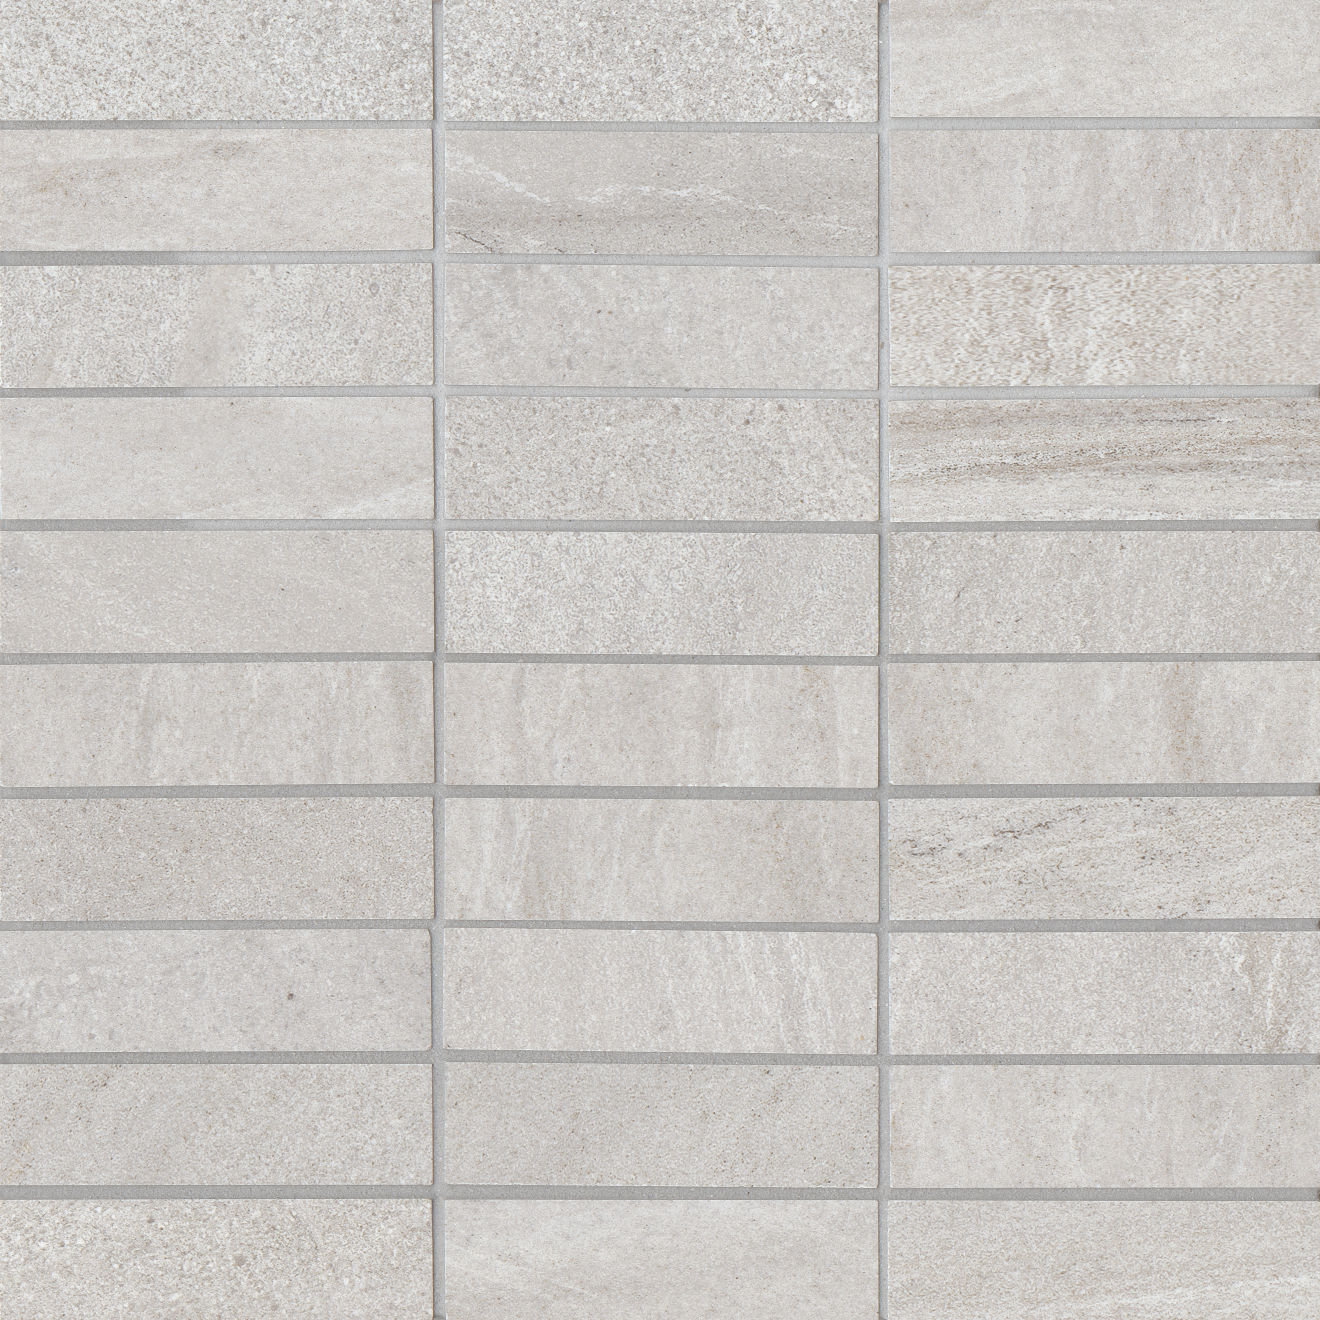 "Purestone 1""x4"" Glazed Porcelain Mosaic in Grigio"